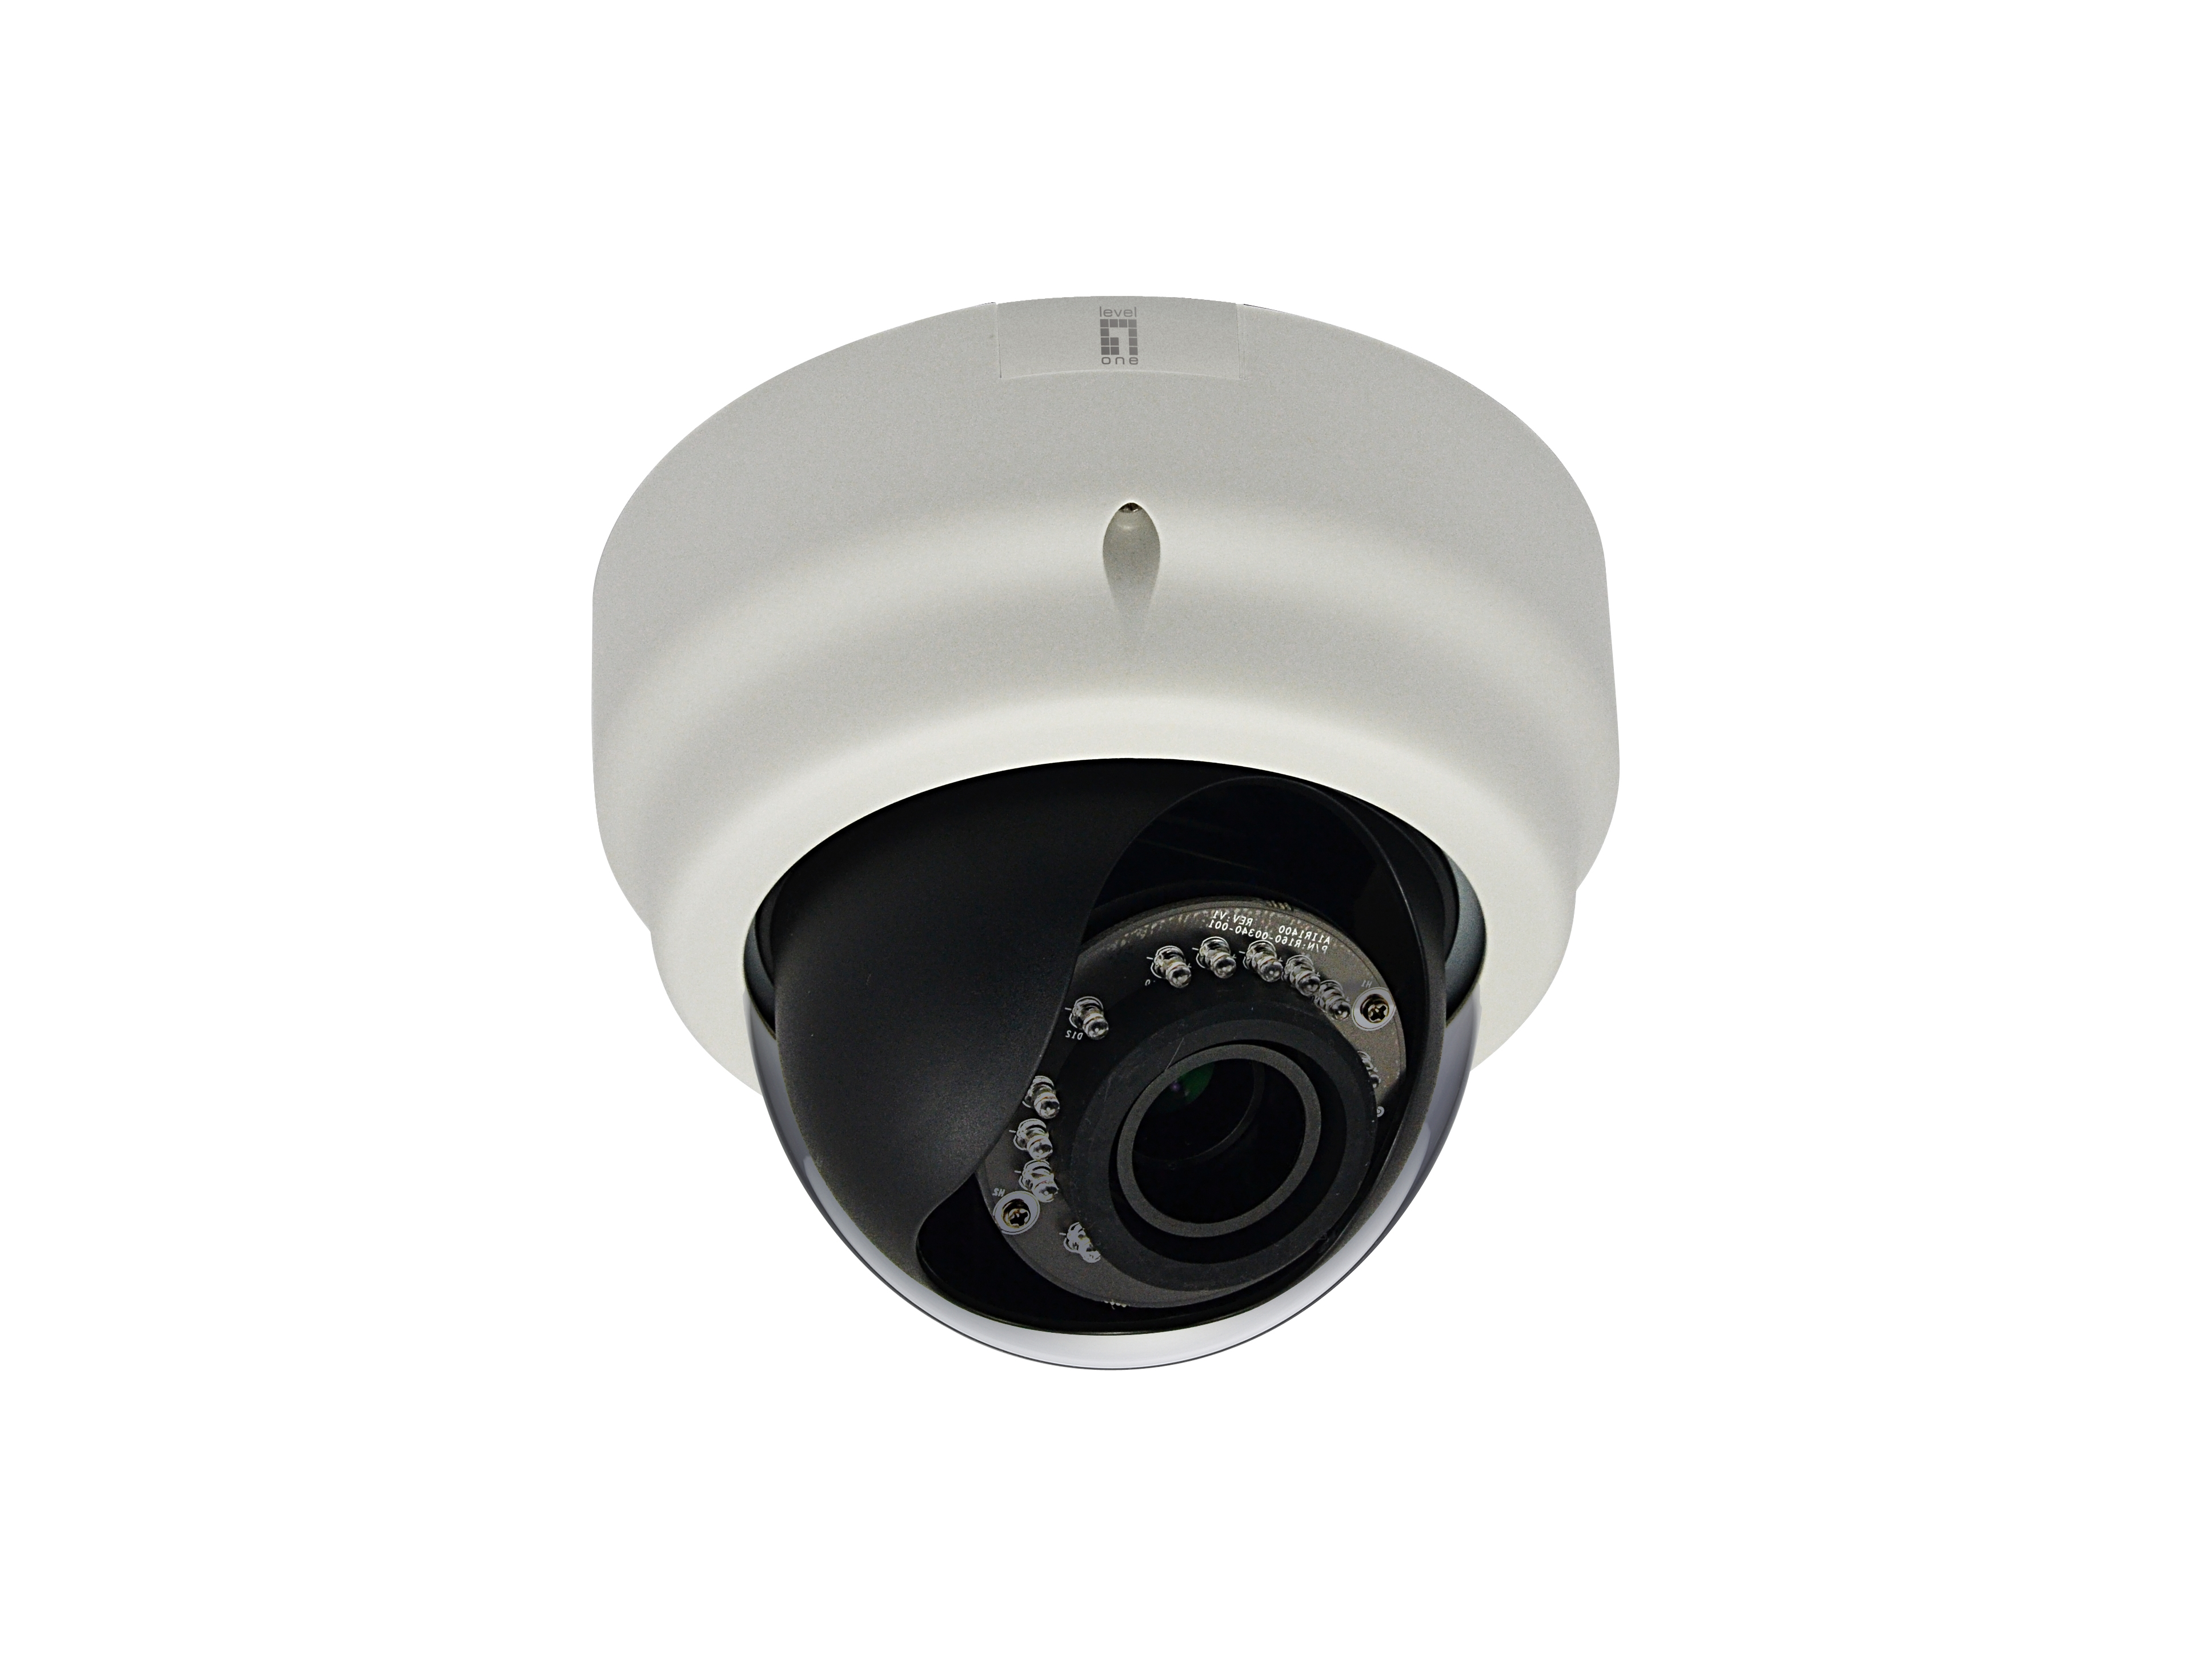 LevelOne Fixed Dome Network Camera - 5-Megapixel - PoE 802.3af - Day & Night - IR LEDs - WDR